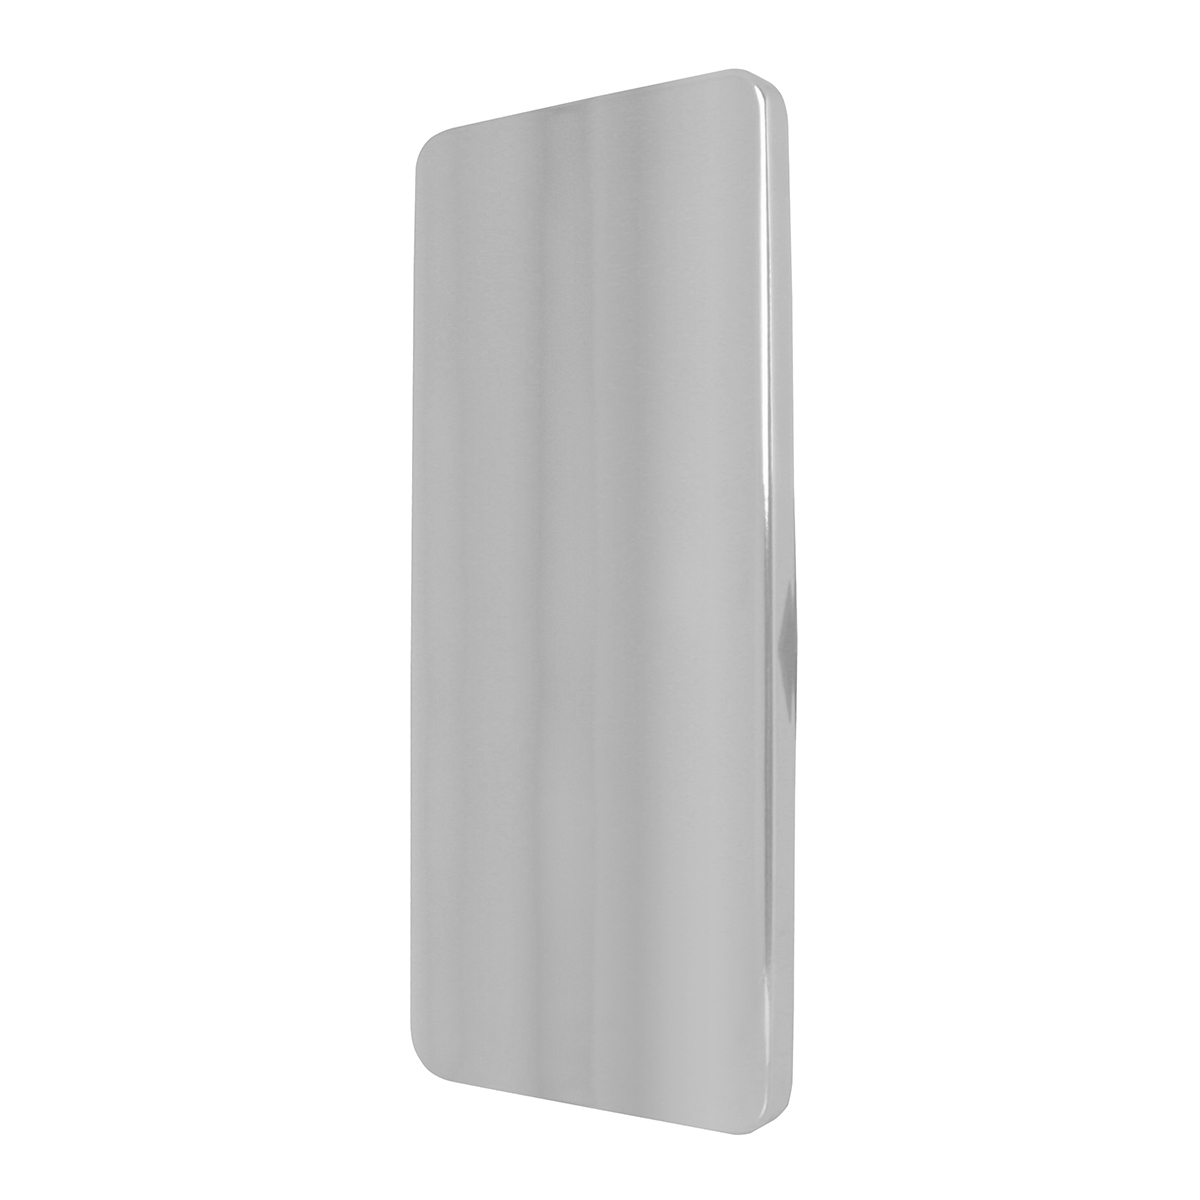 97630 Exterior Vent Door Covers for International